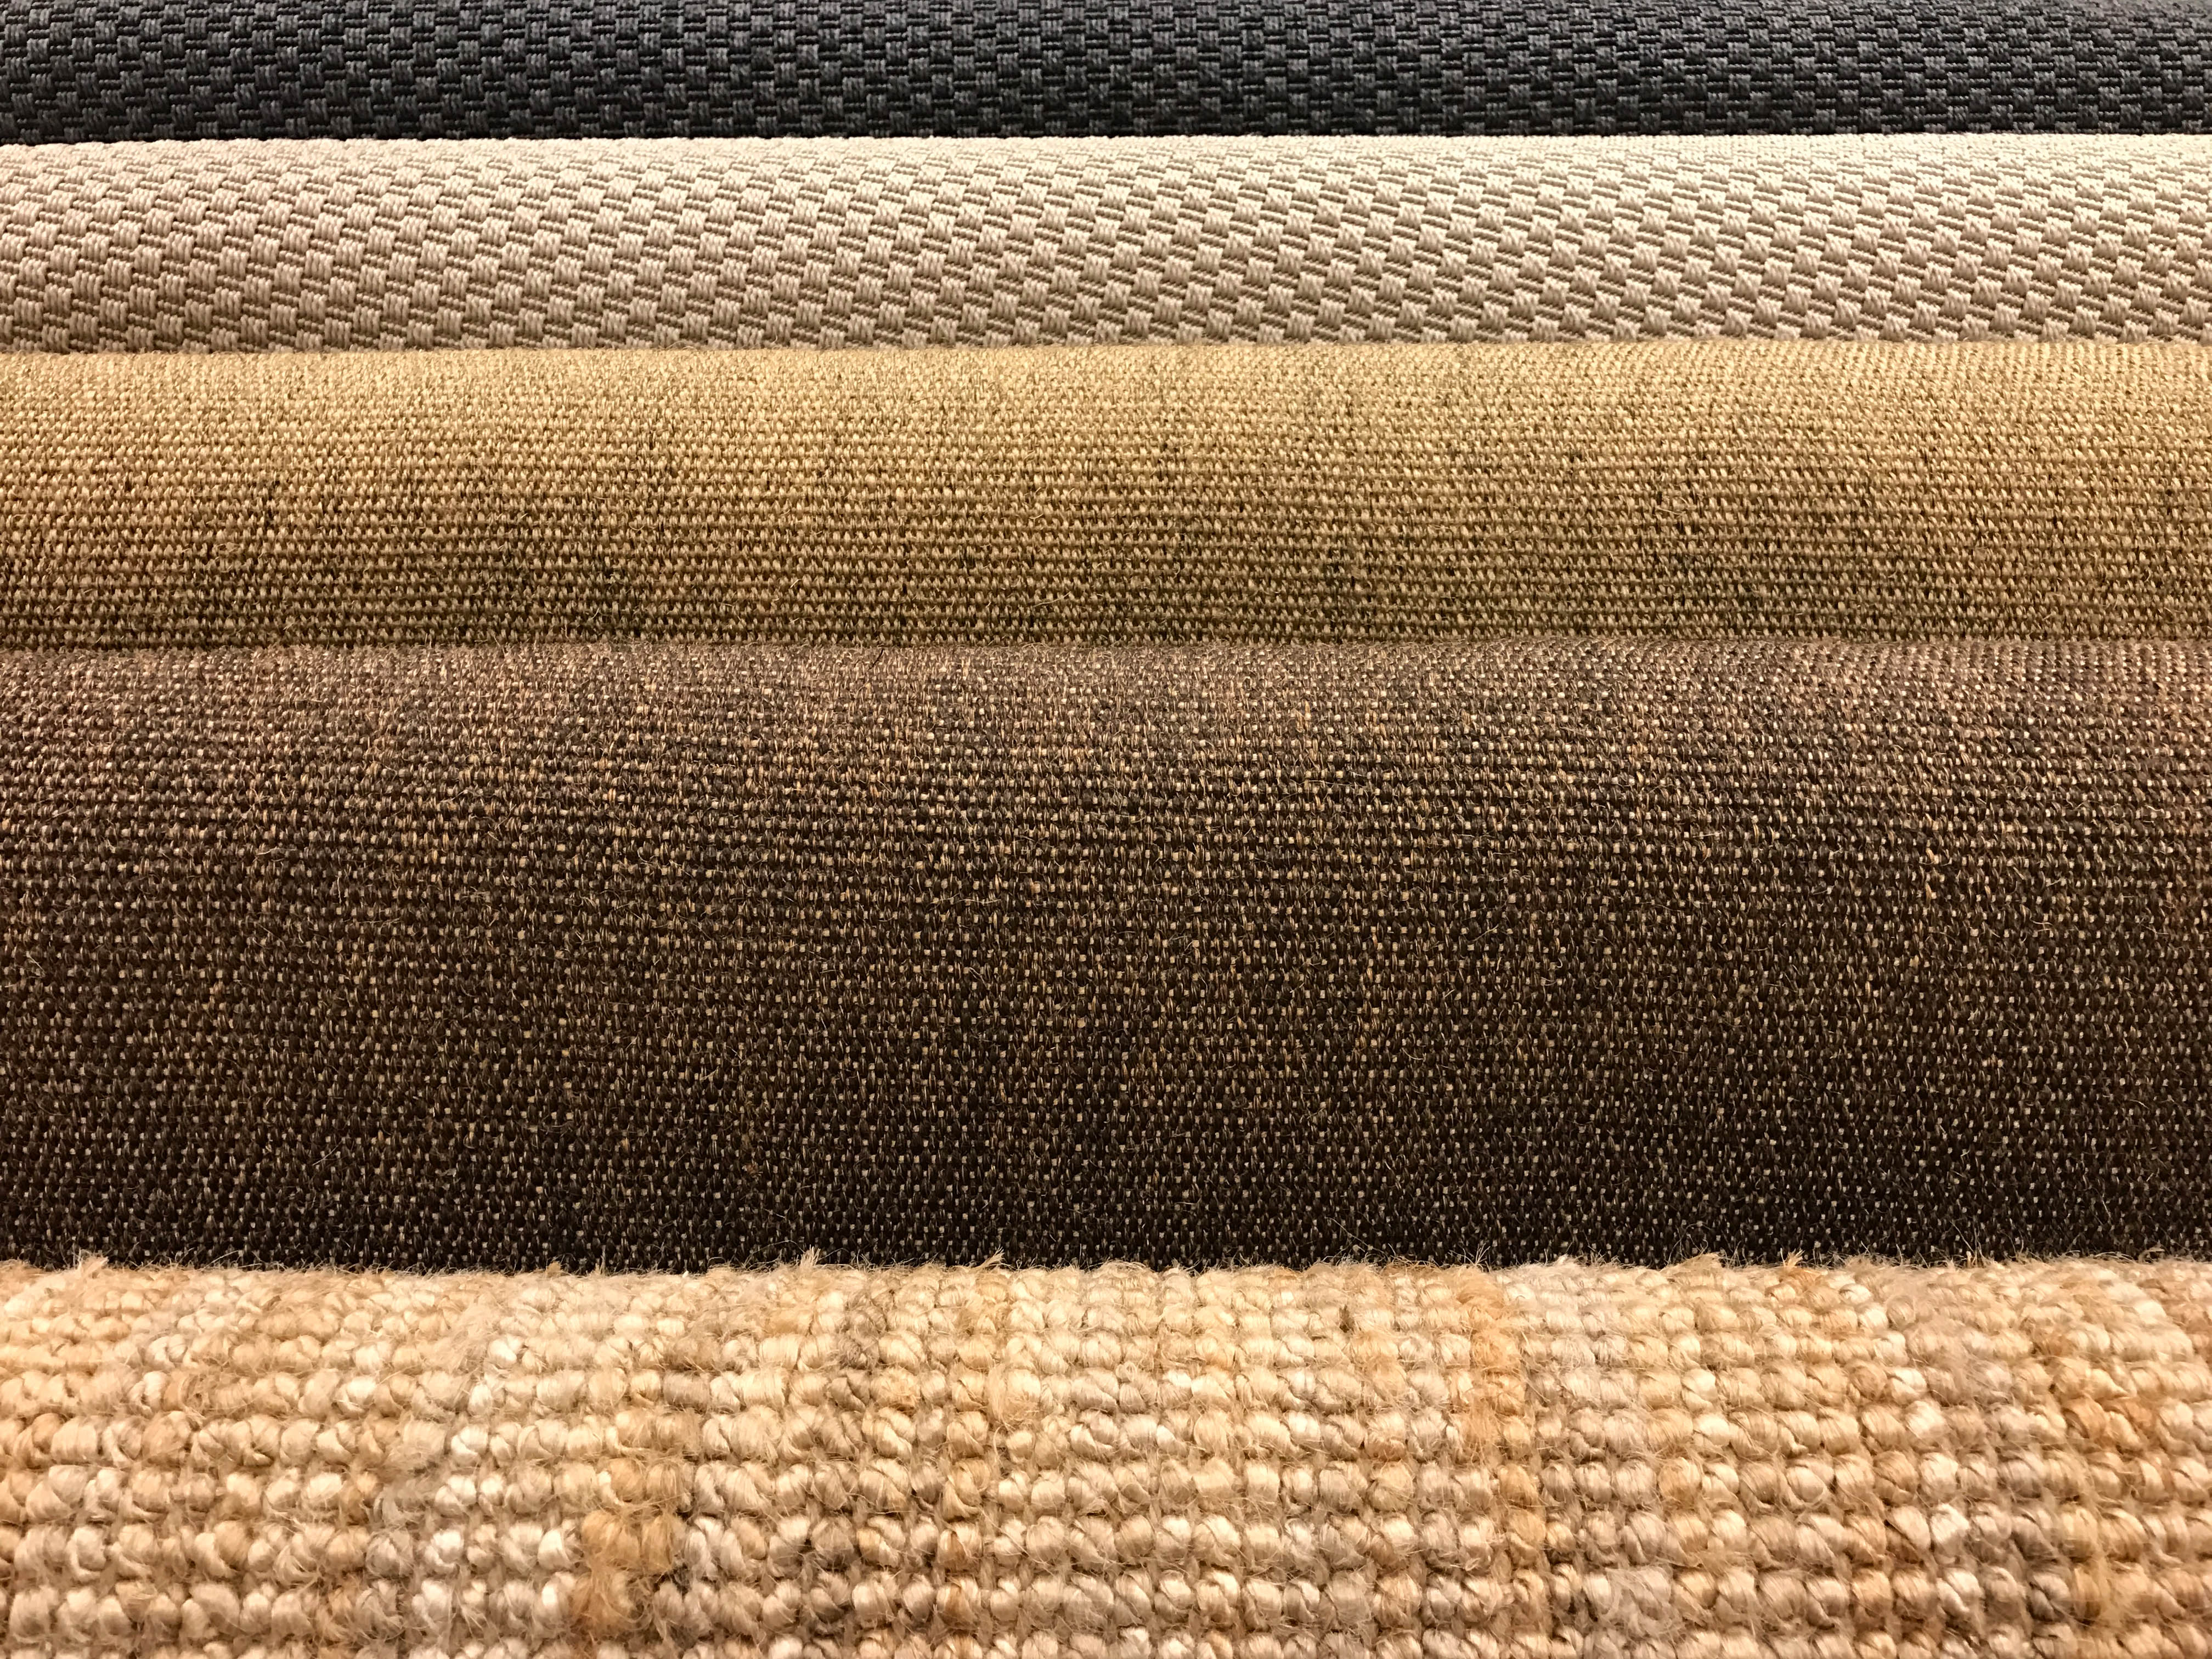 How To Get Stains Out Of Sisal Rugs Home Guides Sf Gate